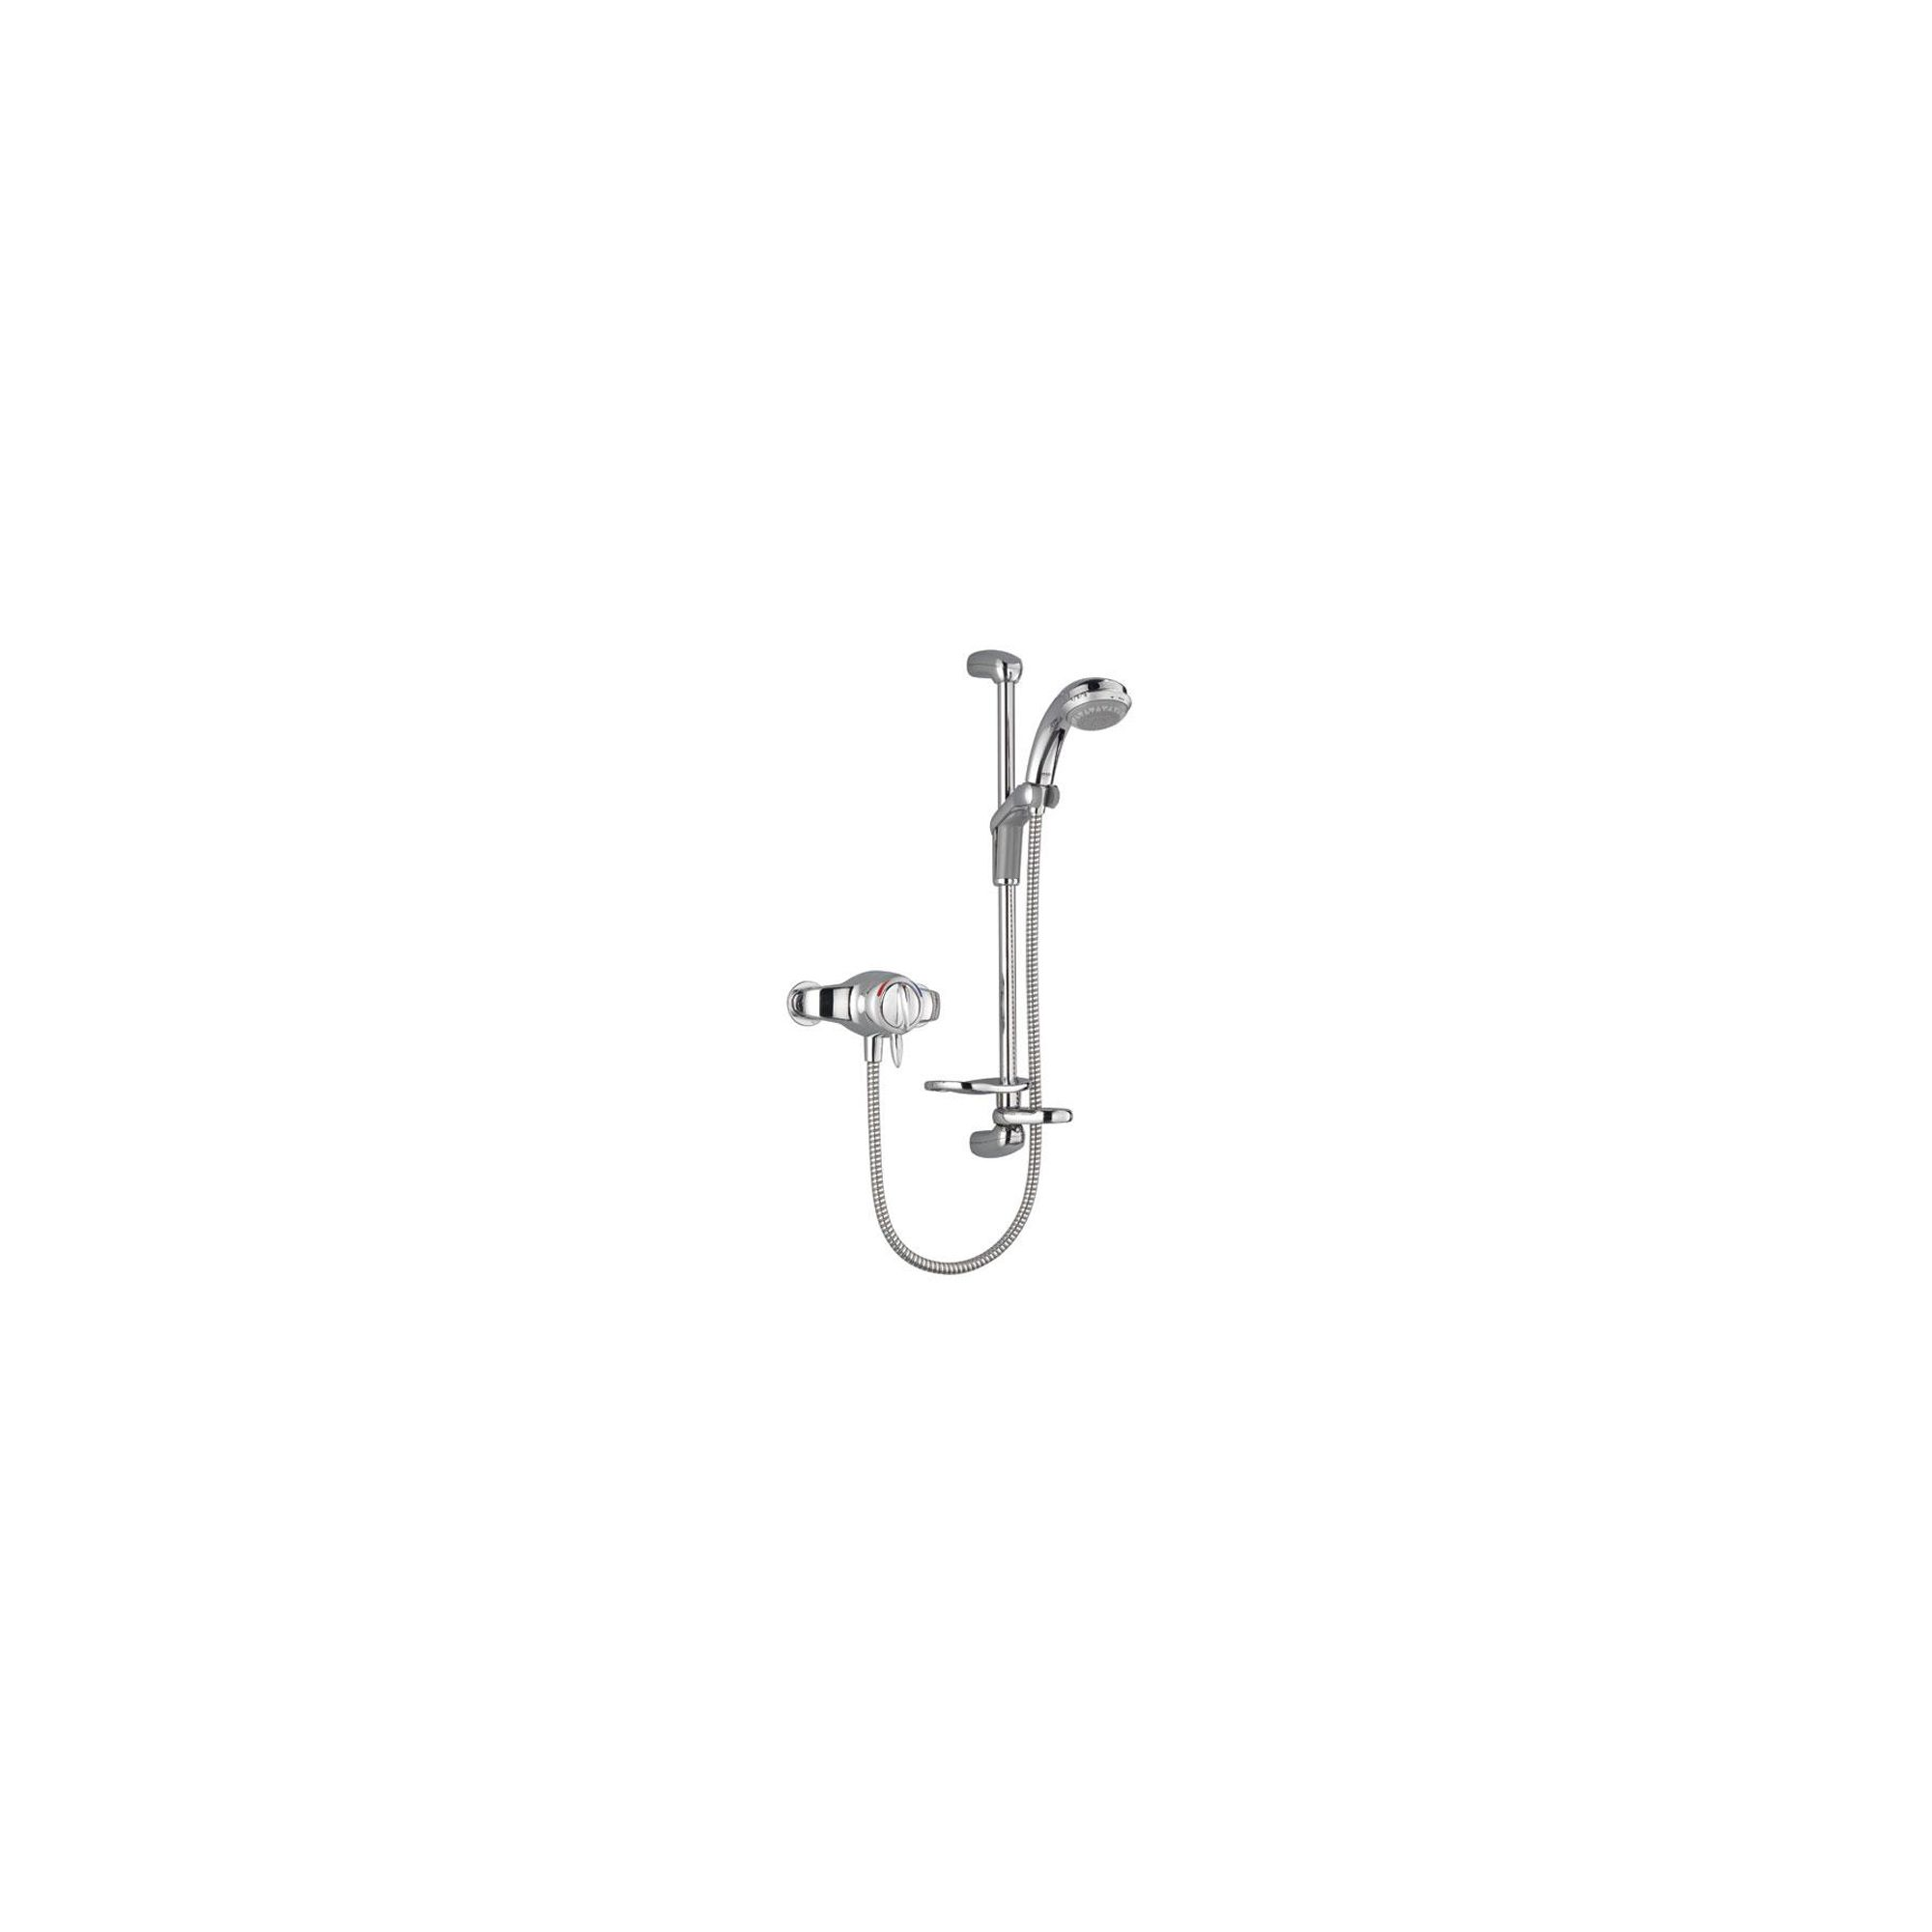 Mira Gem 88 EV Mixer Shower with Kit Chrome at Tesco Direct